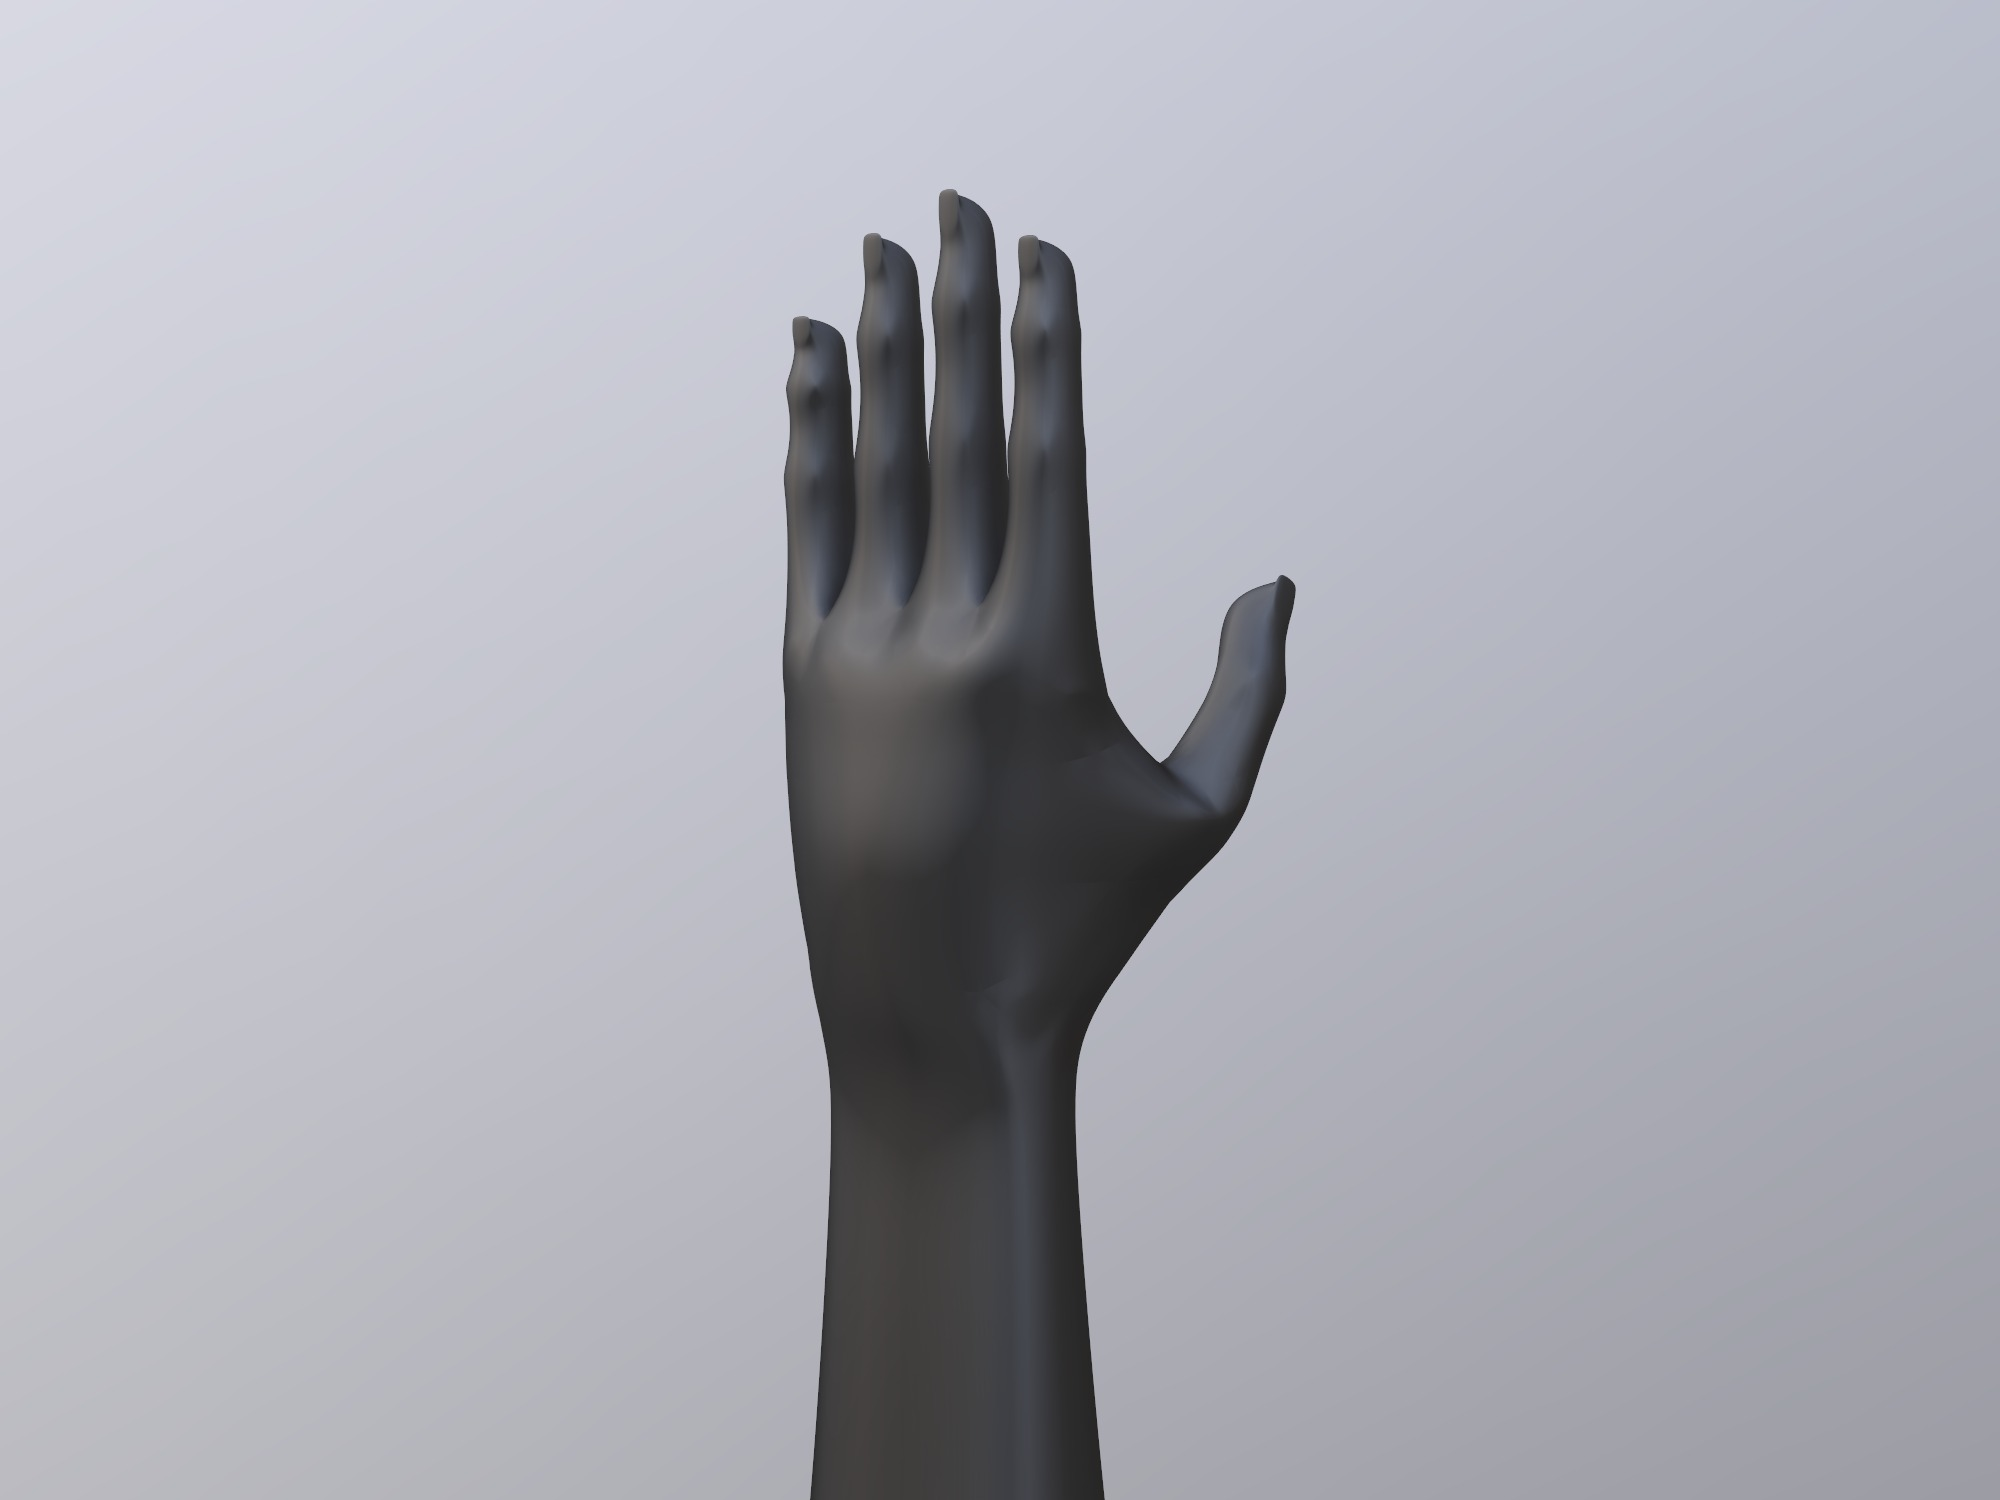 Hand-01 Prototype  (copy) - 3D design by gio.savir Jan 3, 2019